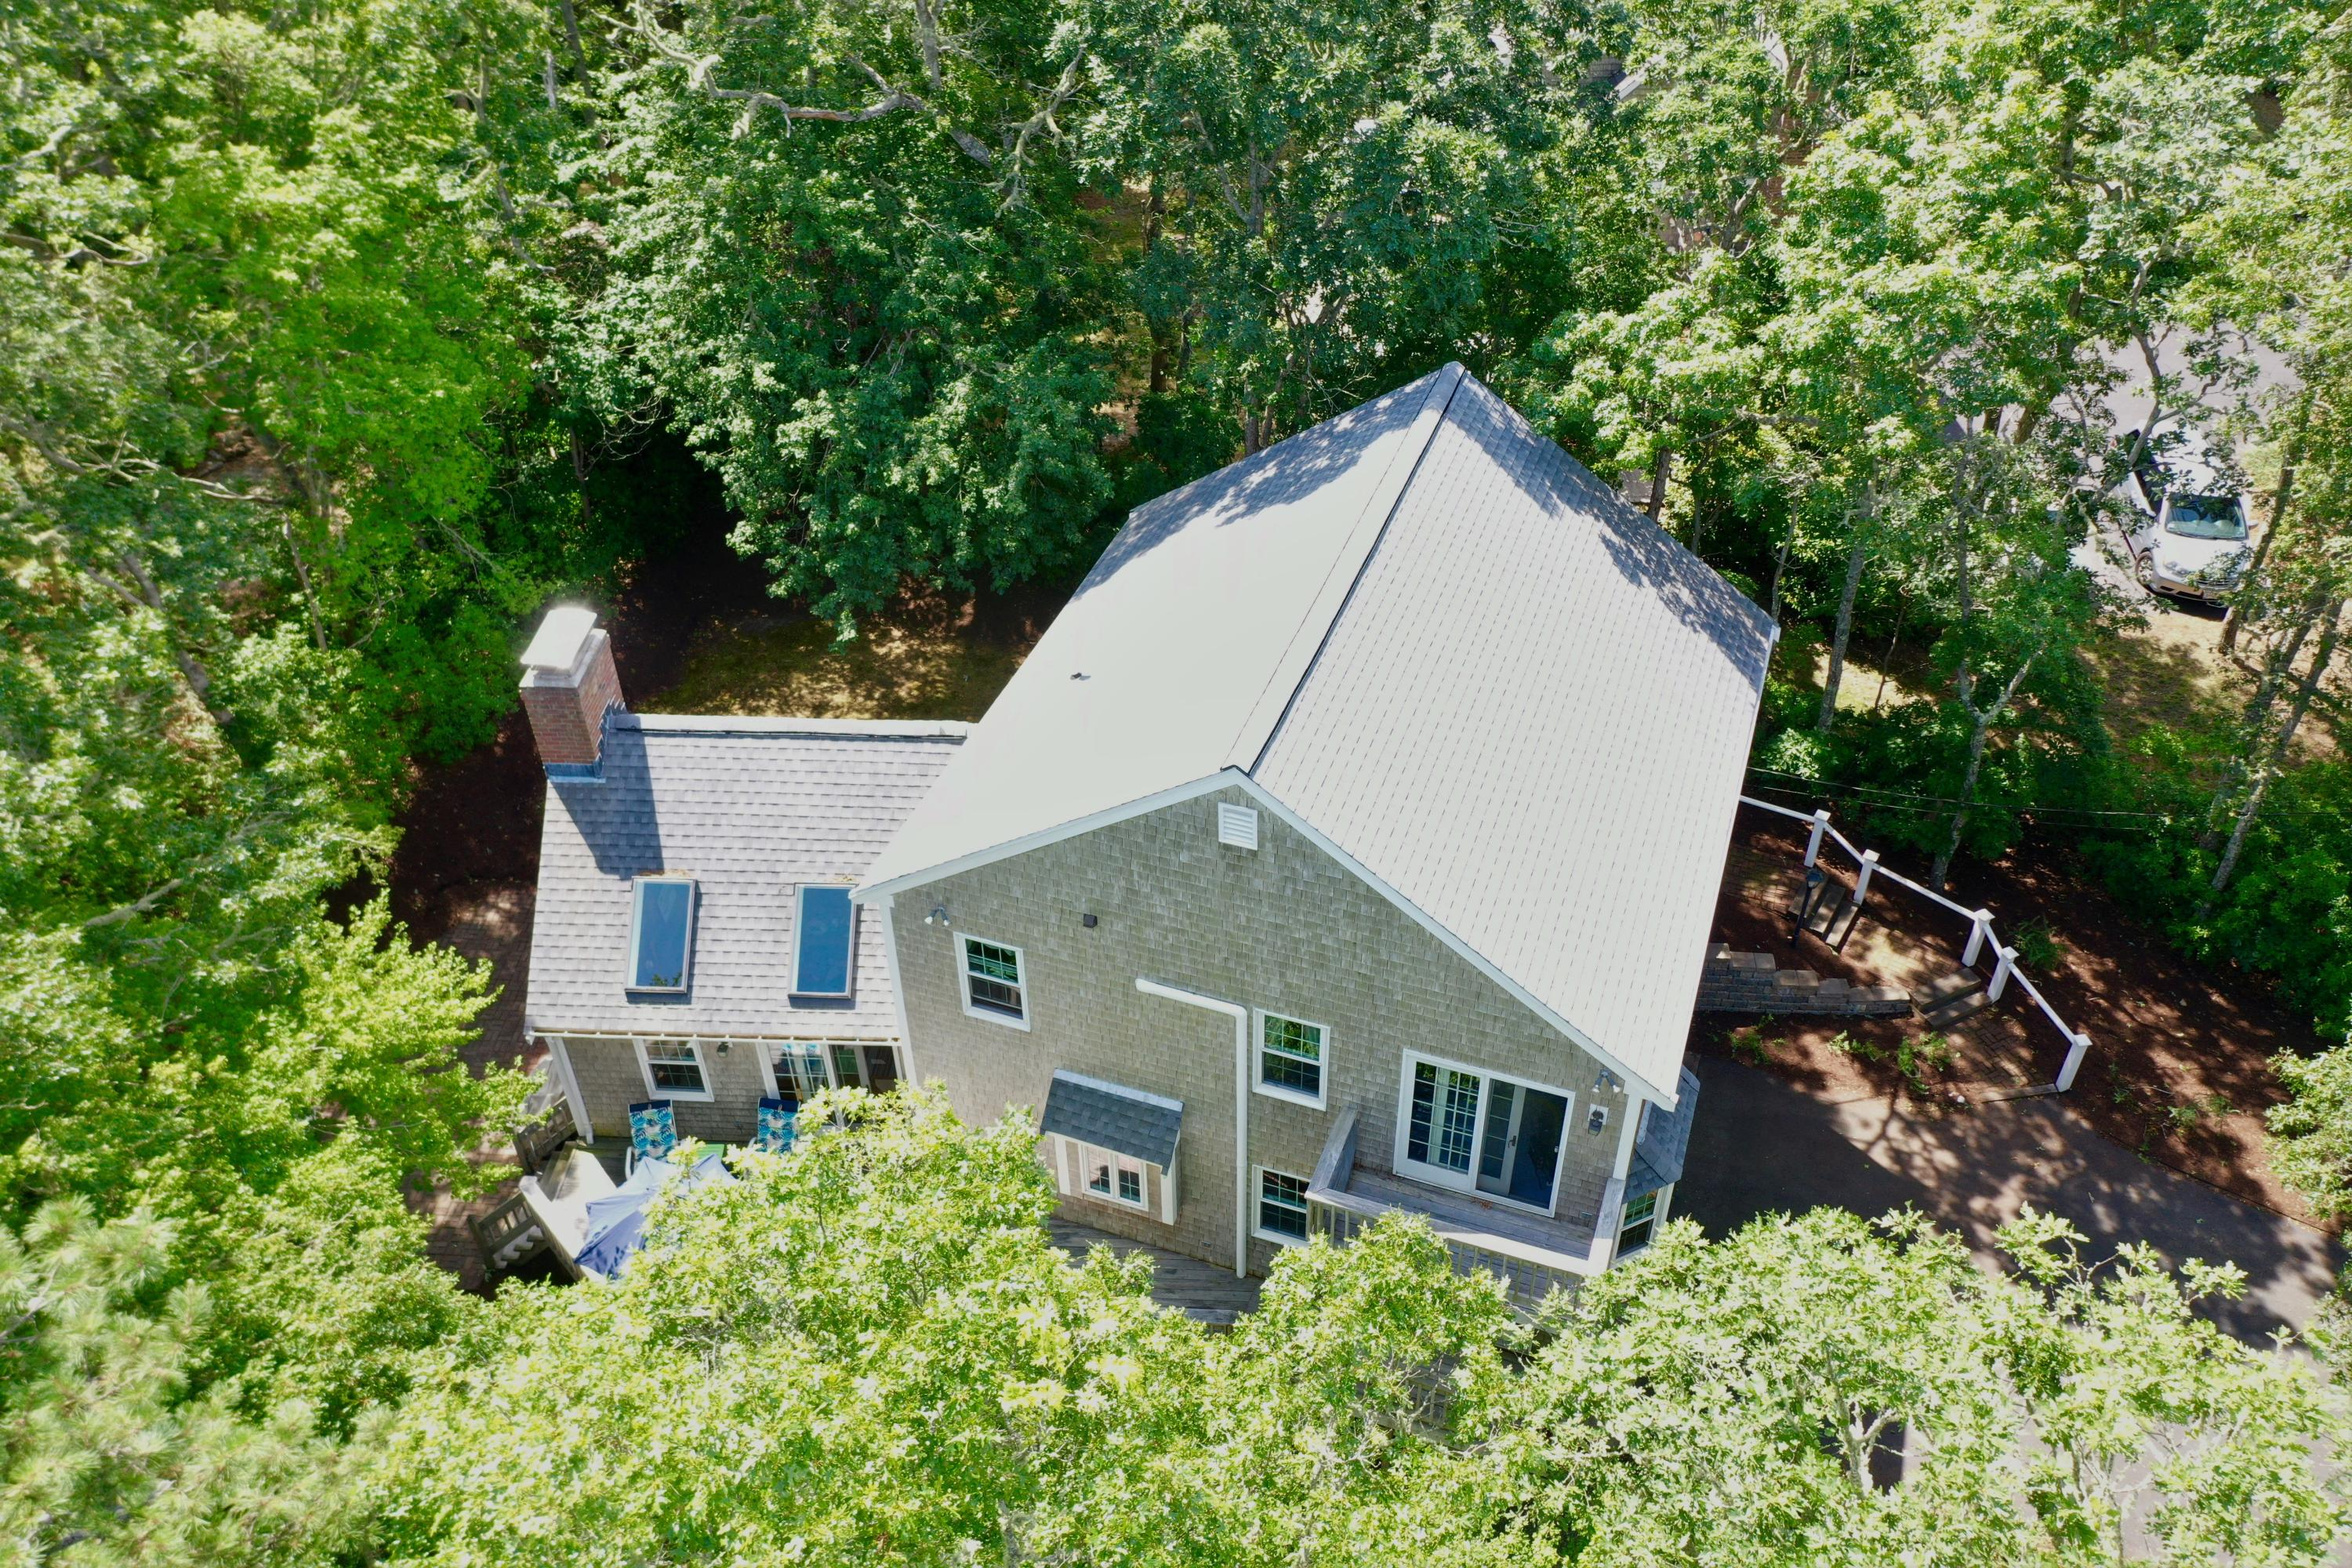 45 Elbow Pond Drive, Brewster MA, 02631 sales details